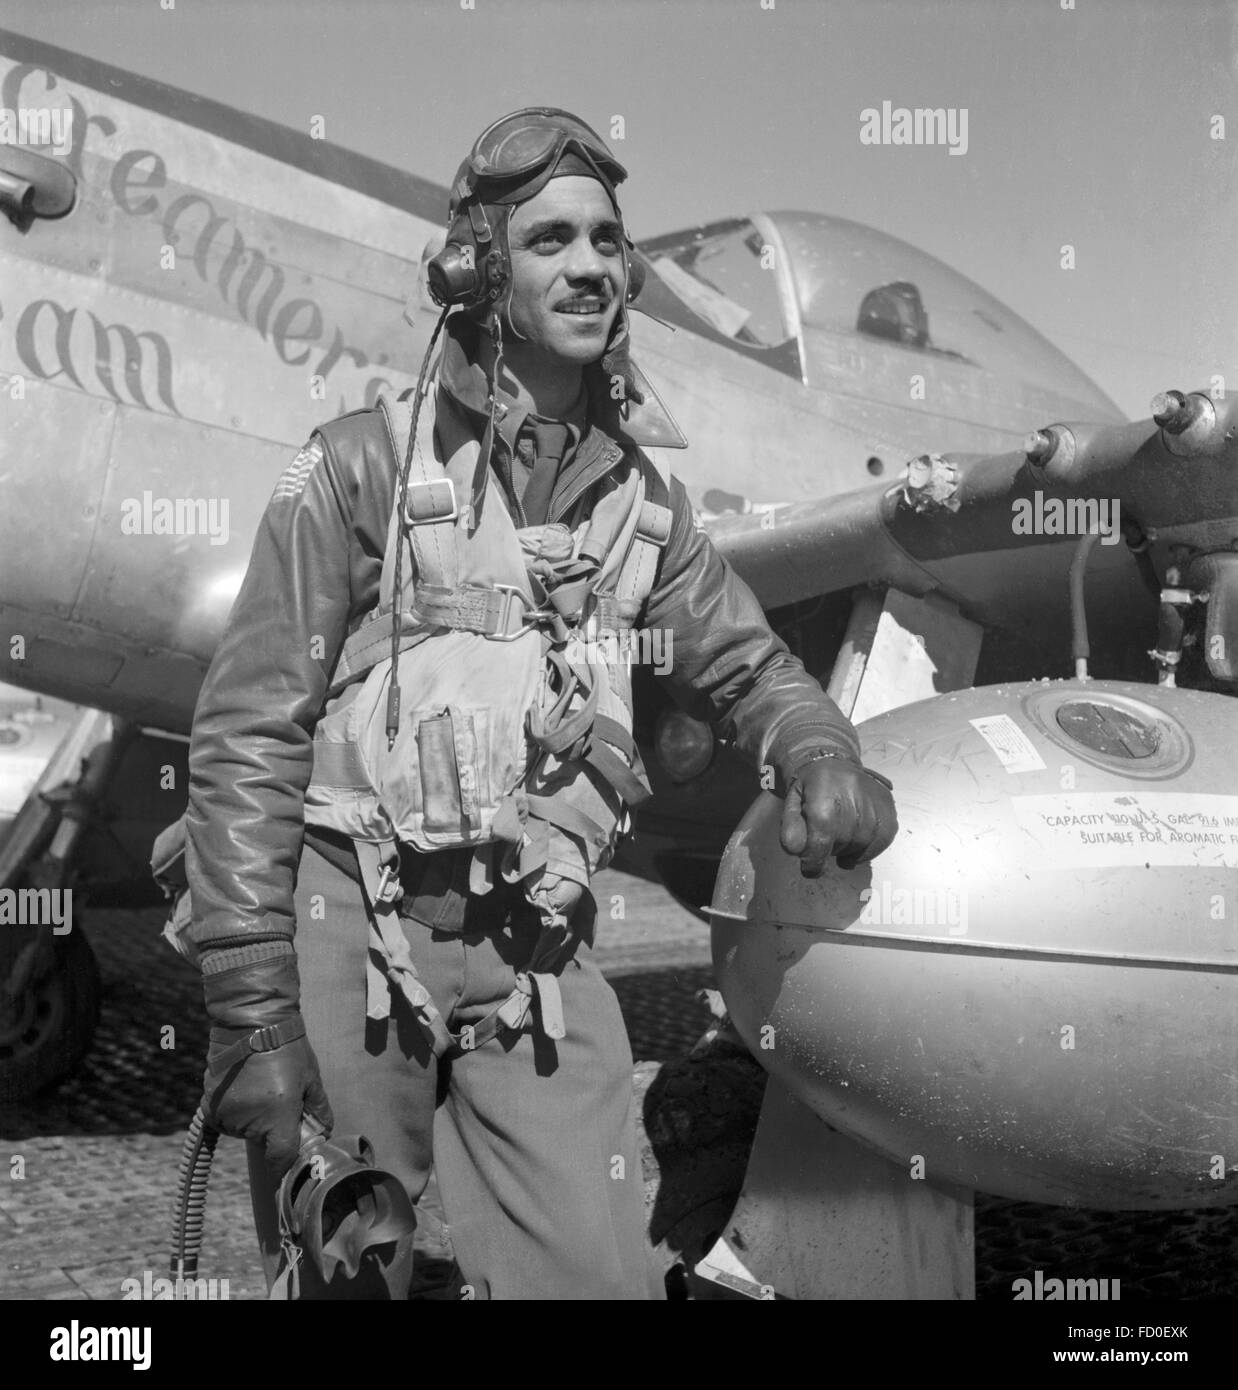 Tuskegee airman Edward C. Gleed, Group Operations Officer, 332nd Fighter Group. The aircraft in the background is - Stock Image